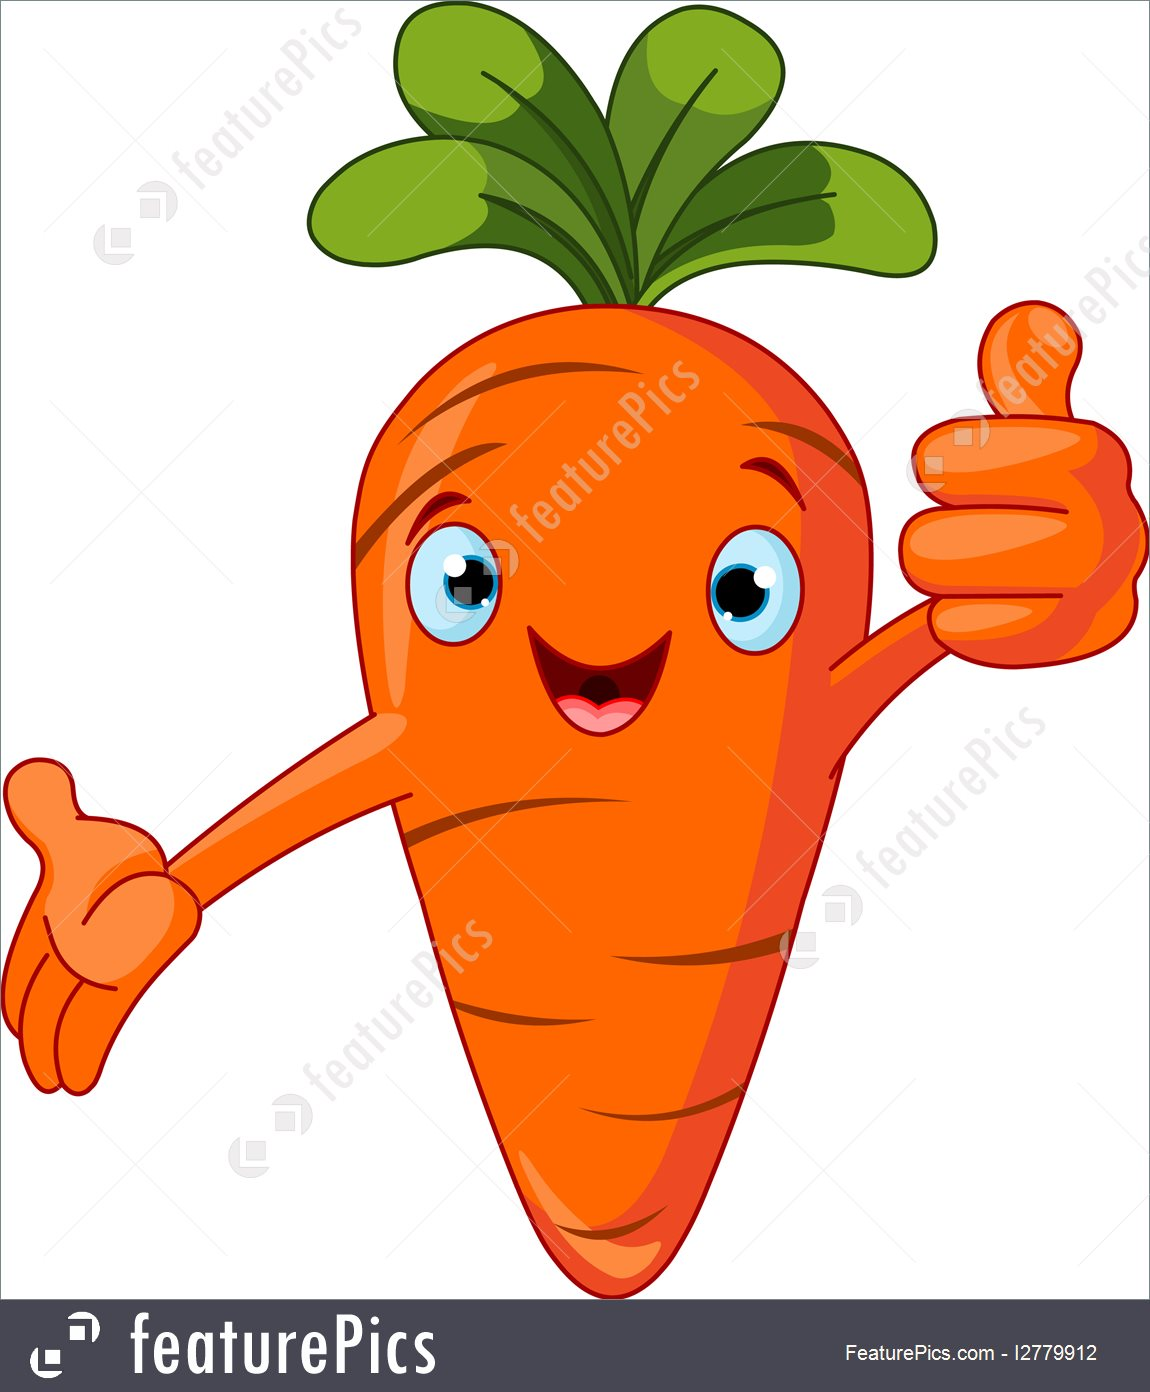 Carrot Character Giving Thumbs Up Illustration.